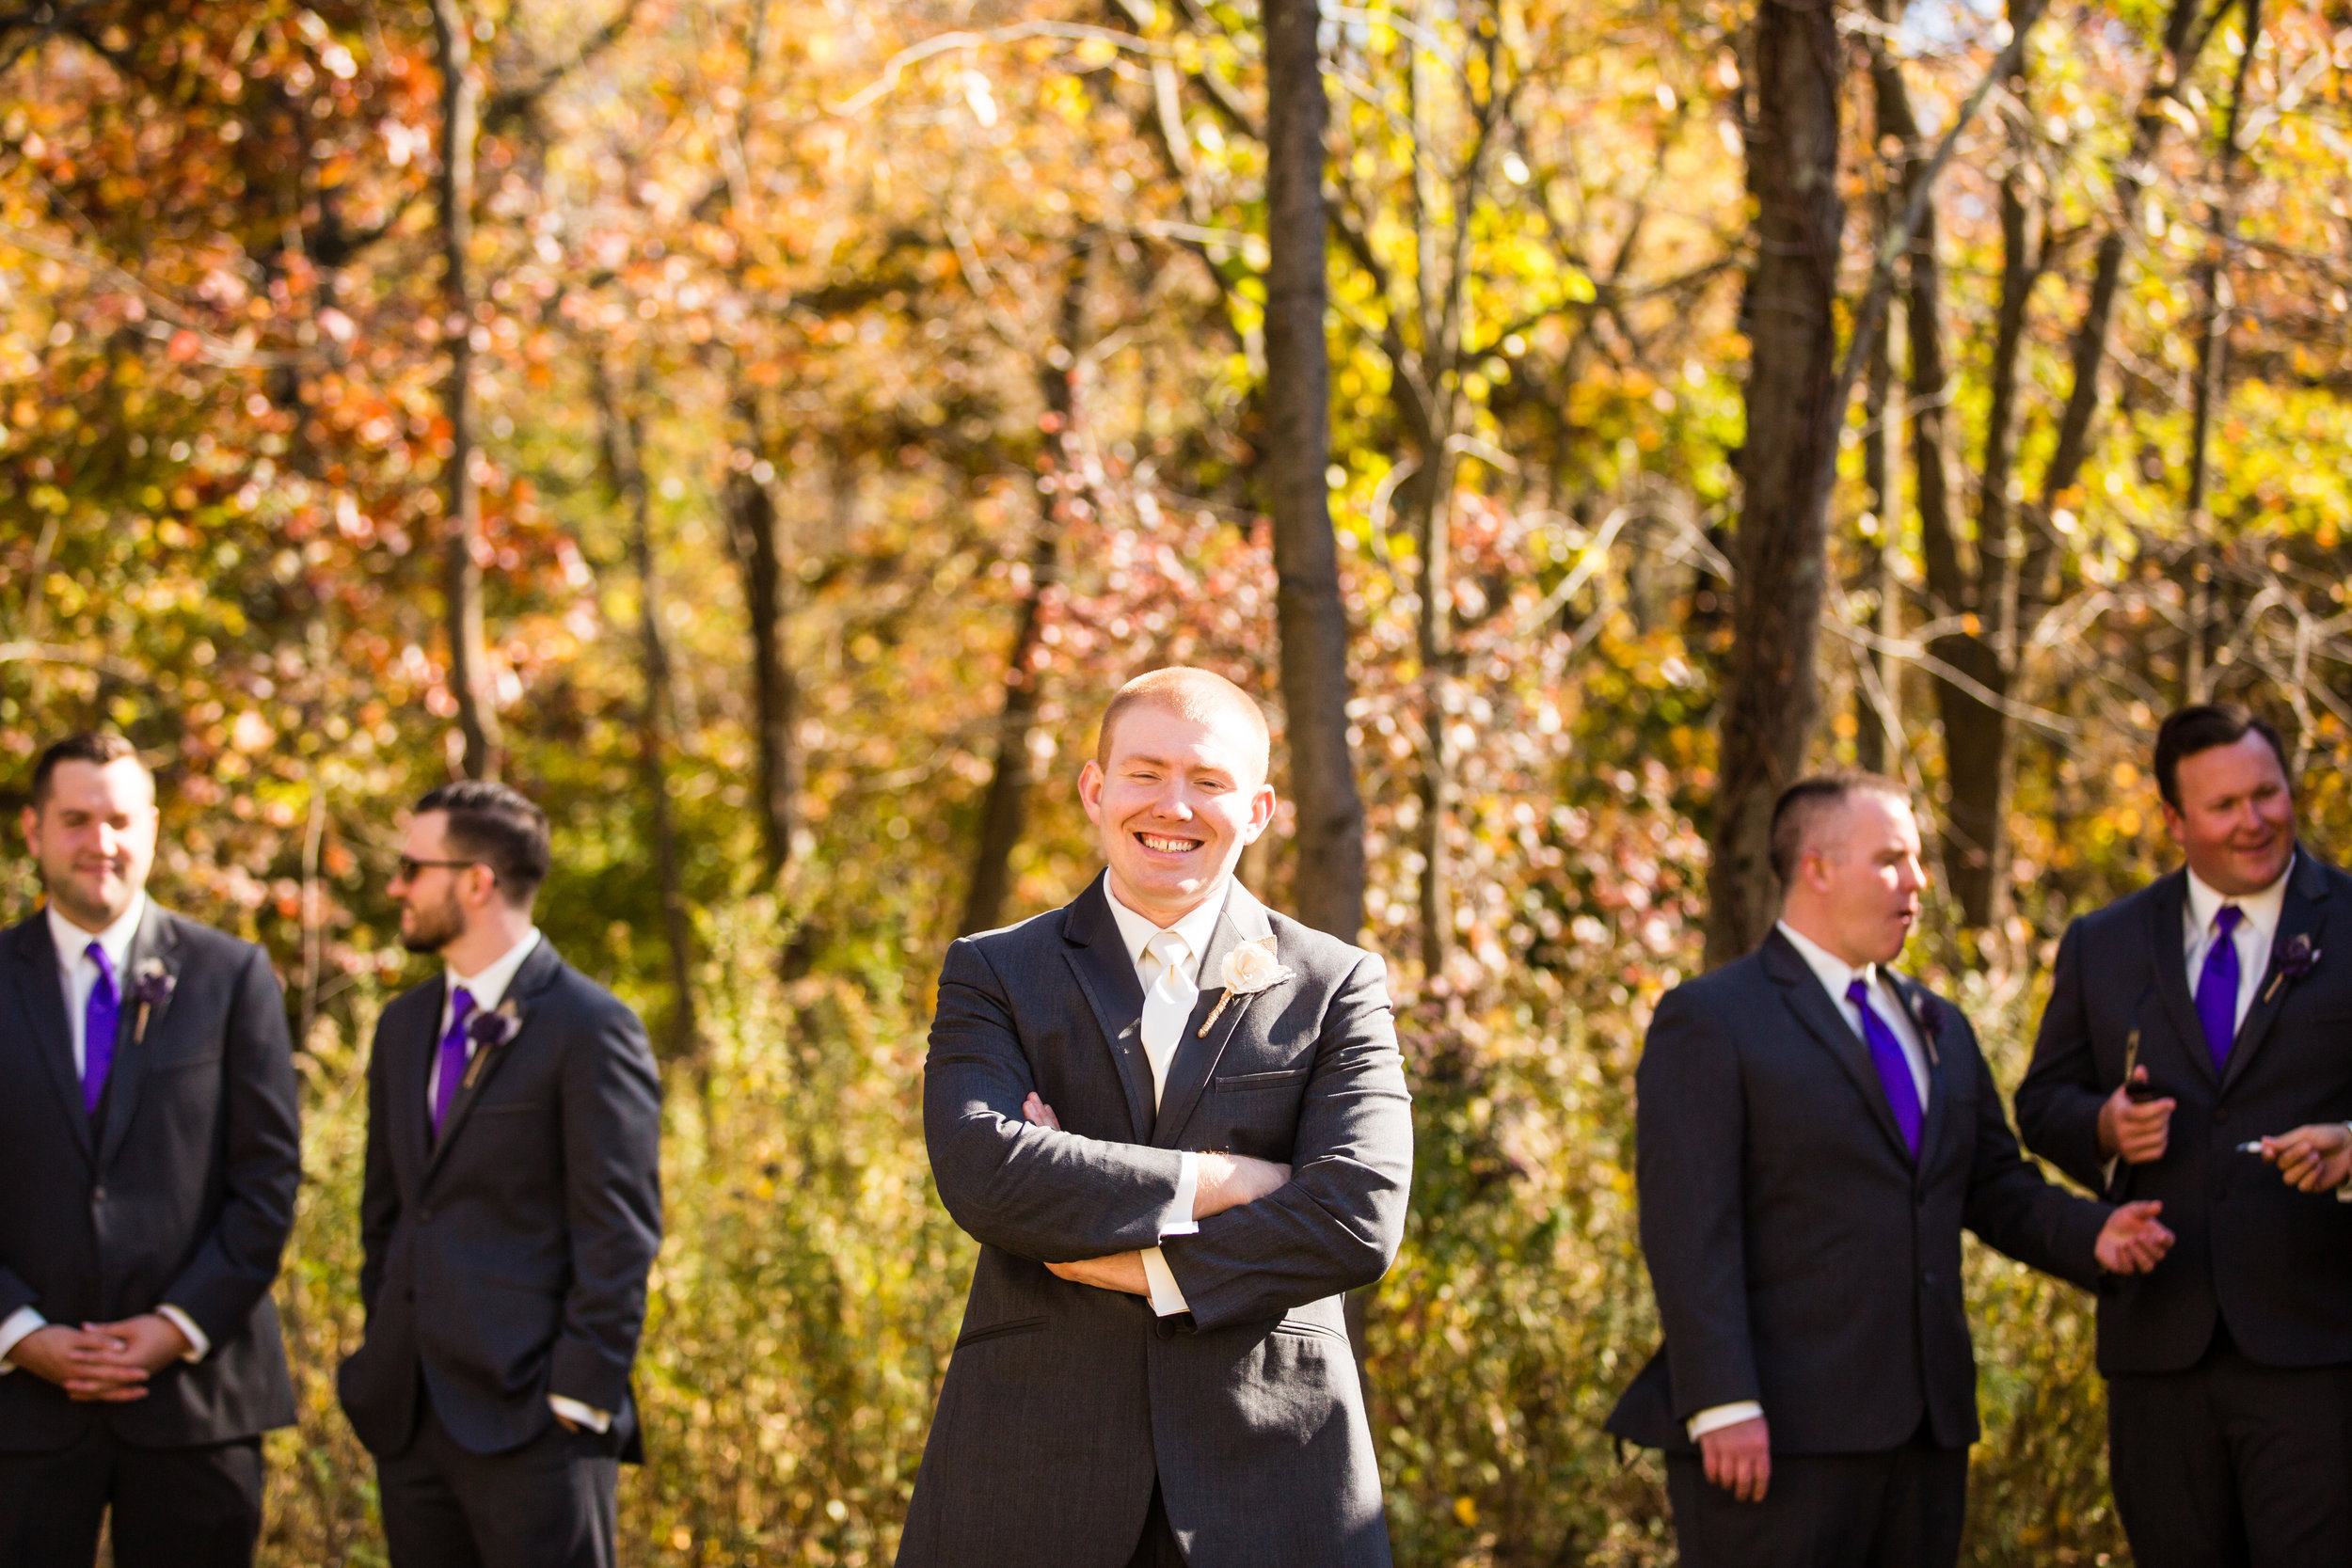 scotlandrunweddingfallsouthjerseyweddingphotographer-7.jpg